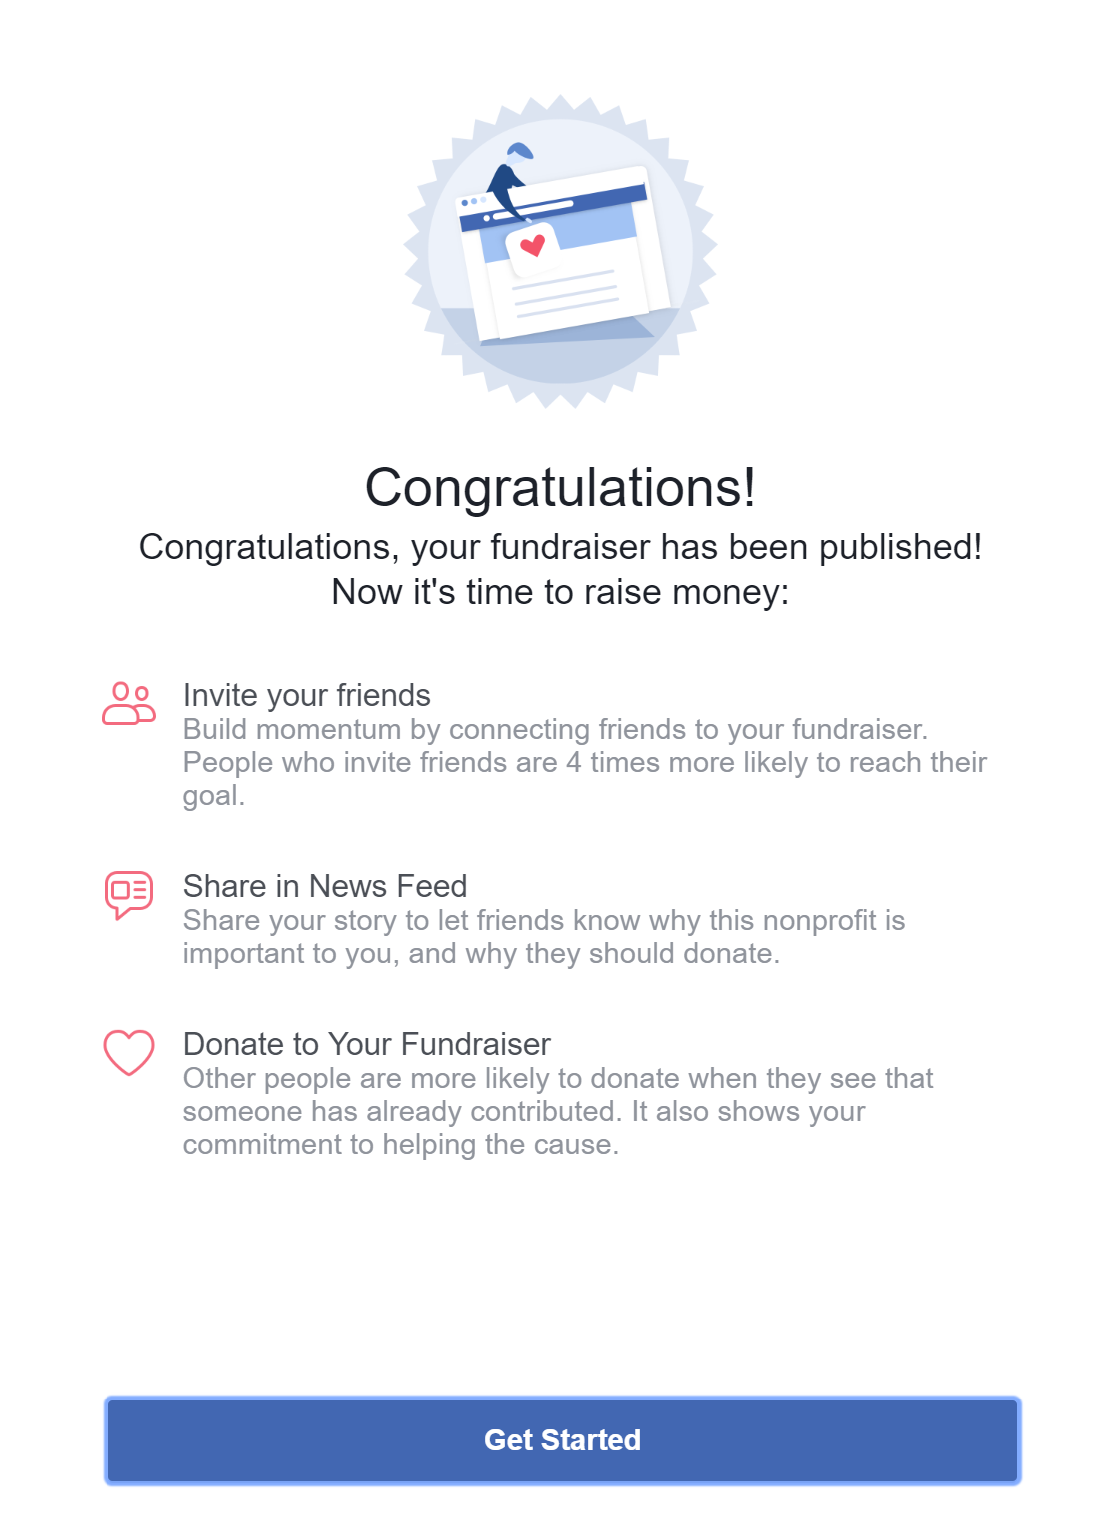 Facebook Fundraiser tips